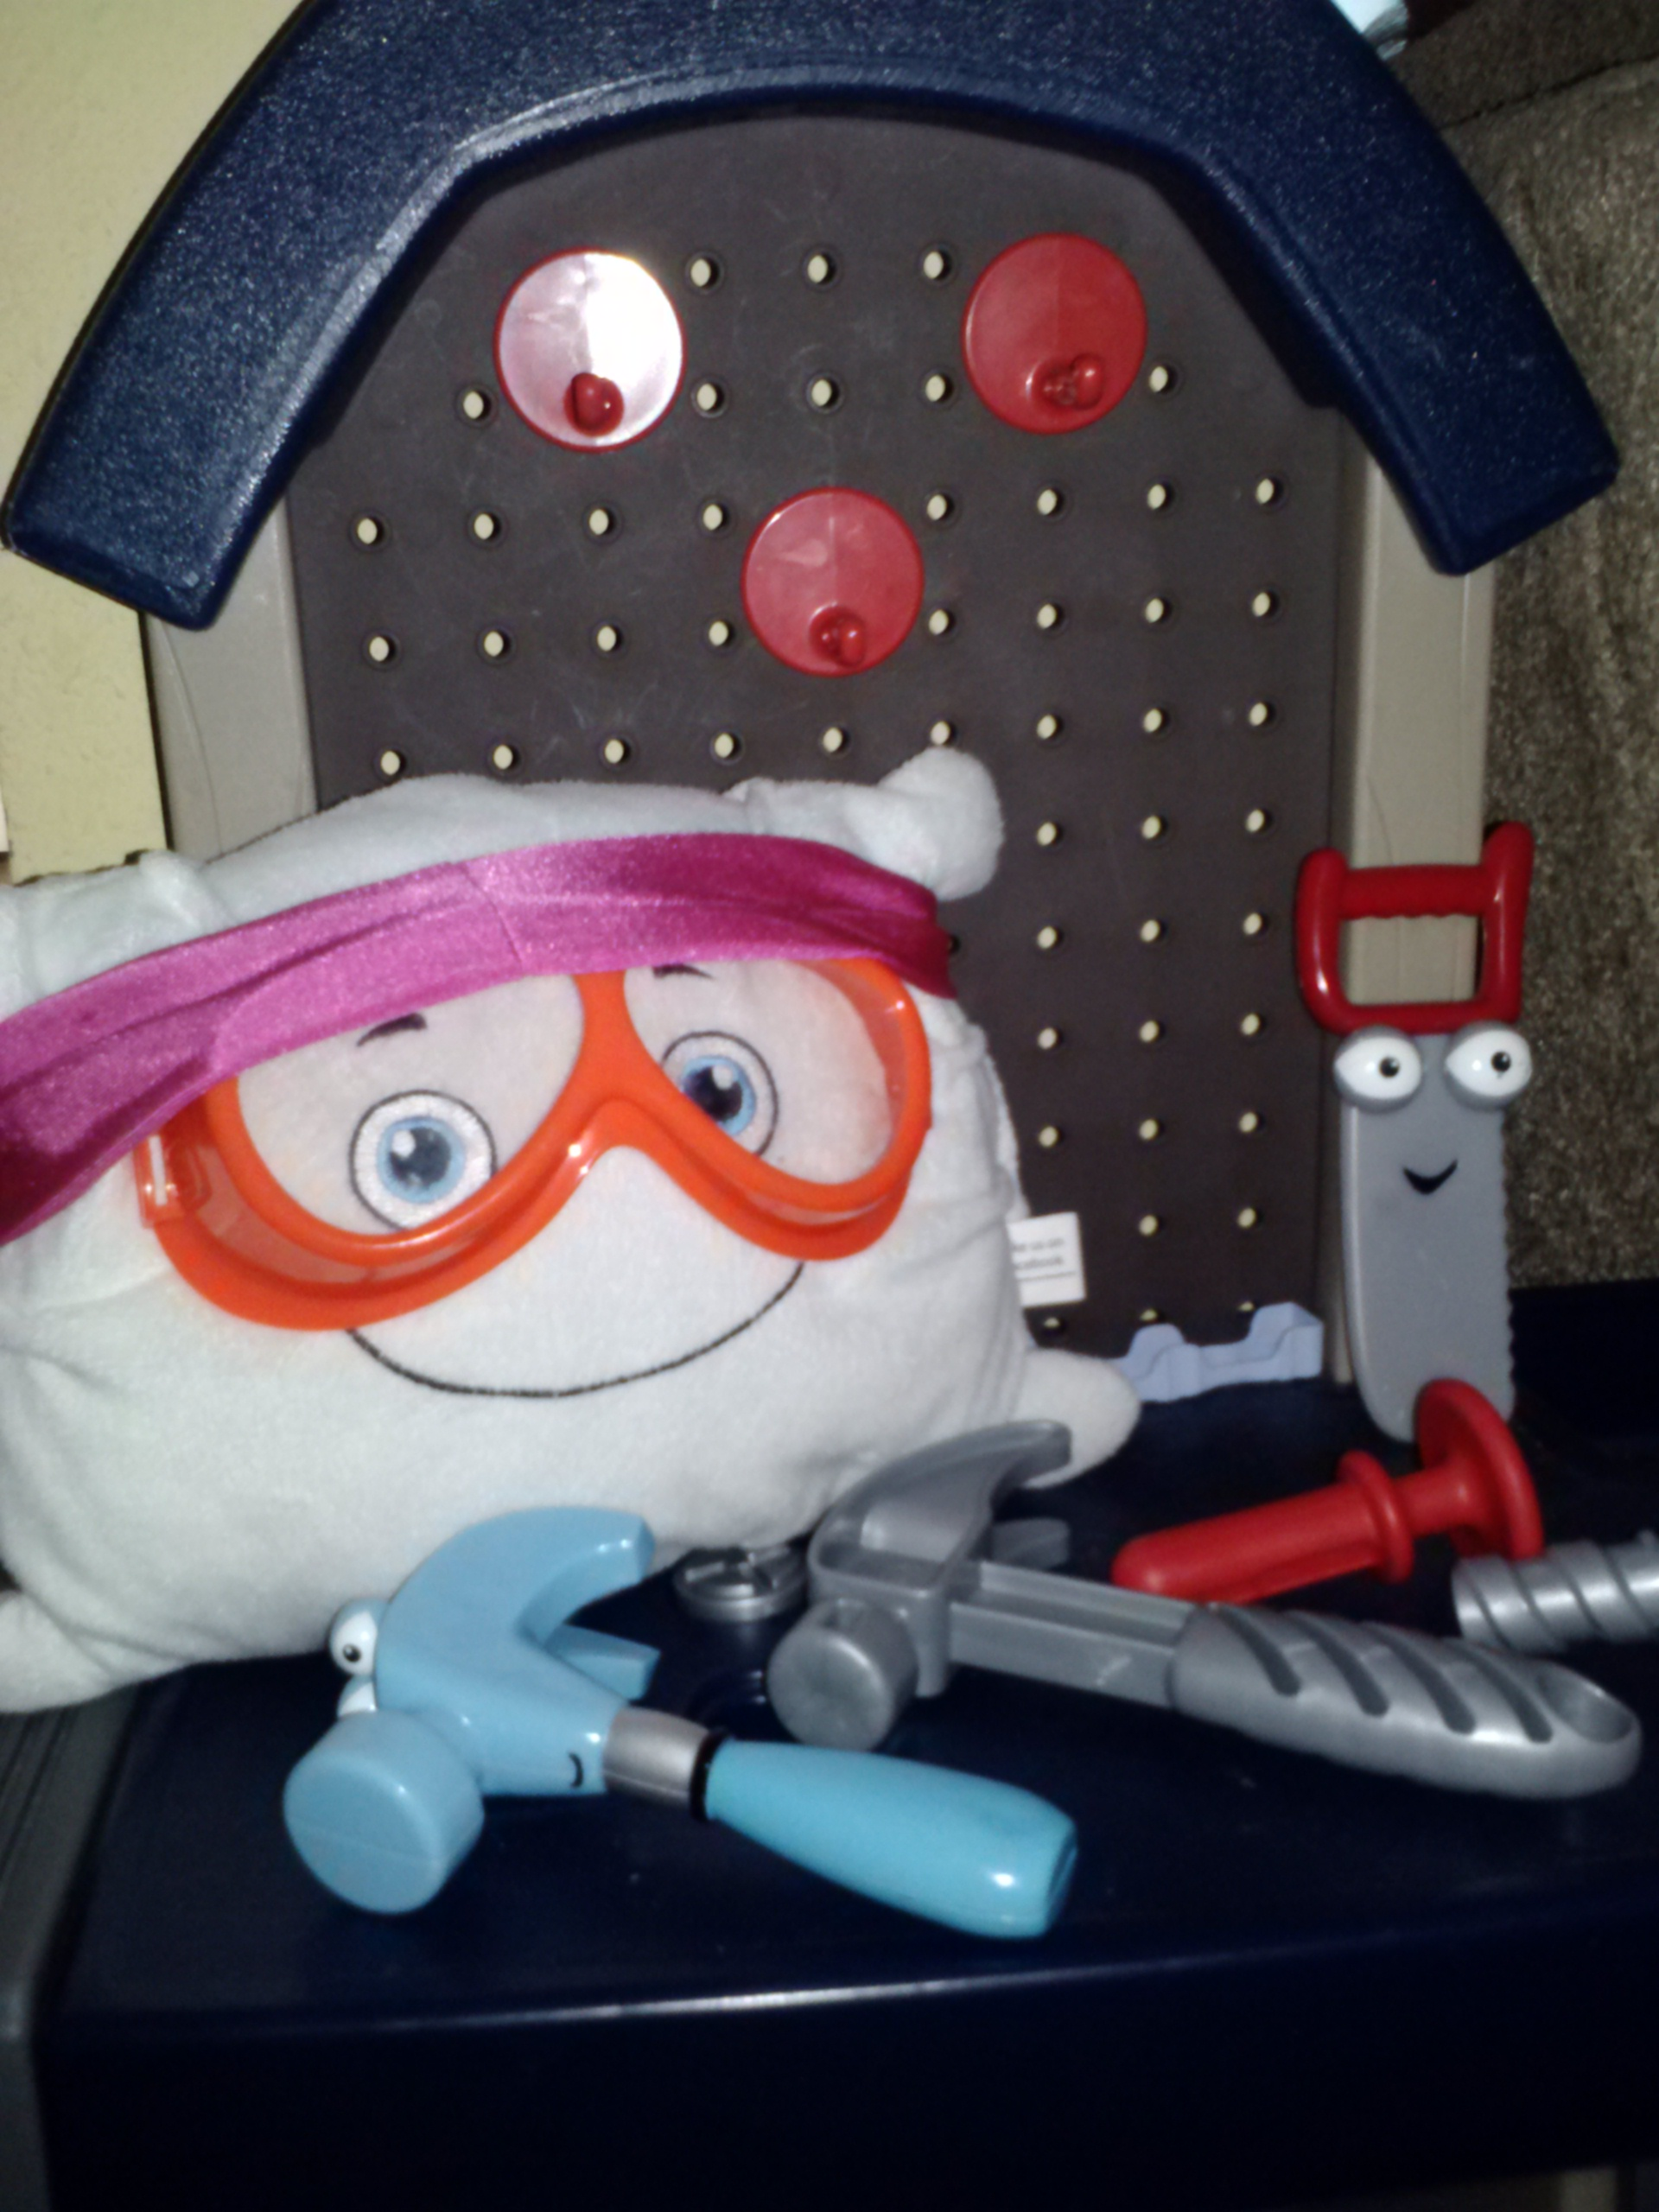 McStuffy in the work shop. Safety first!